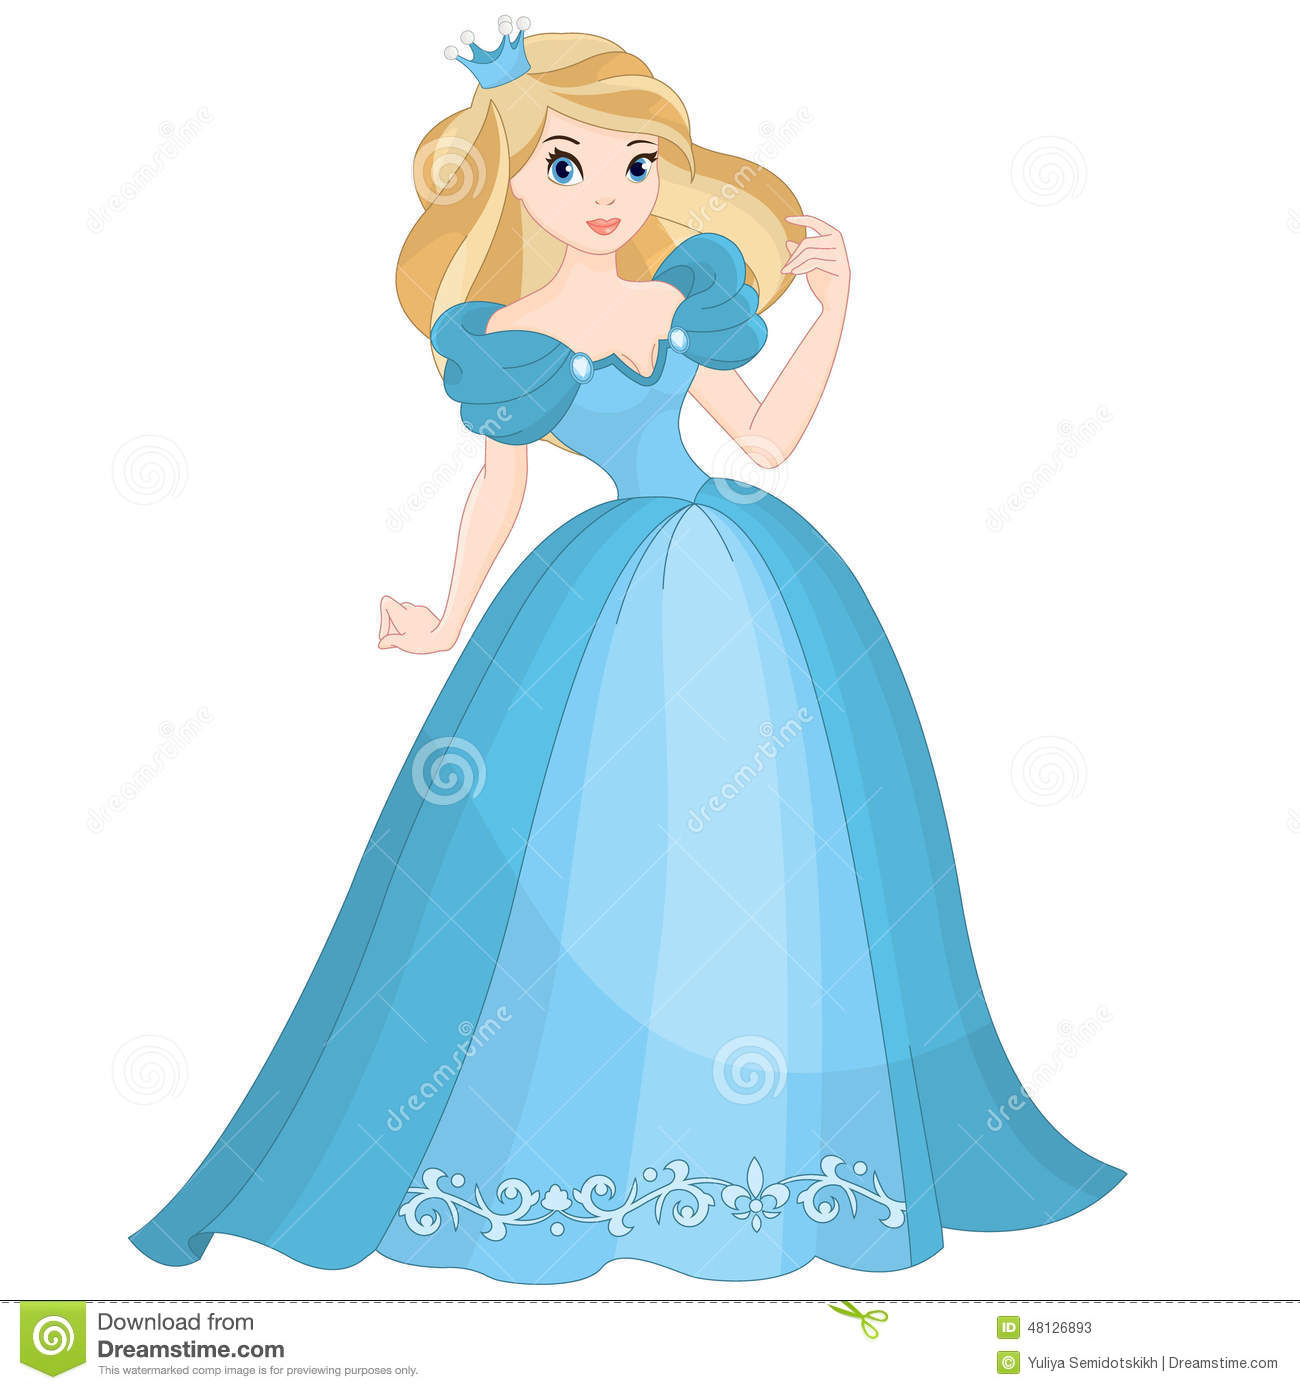 Princess Dress Clipart | Free download best Princess Dress Clipart ...